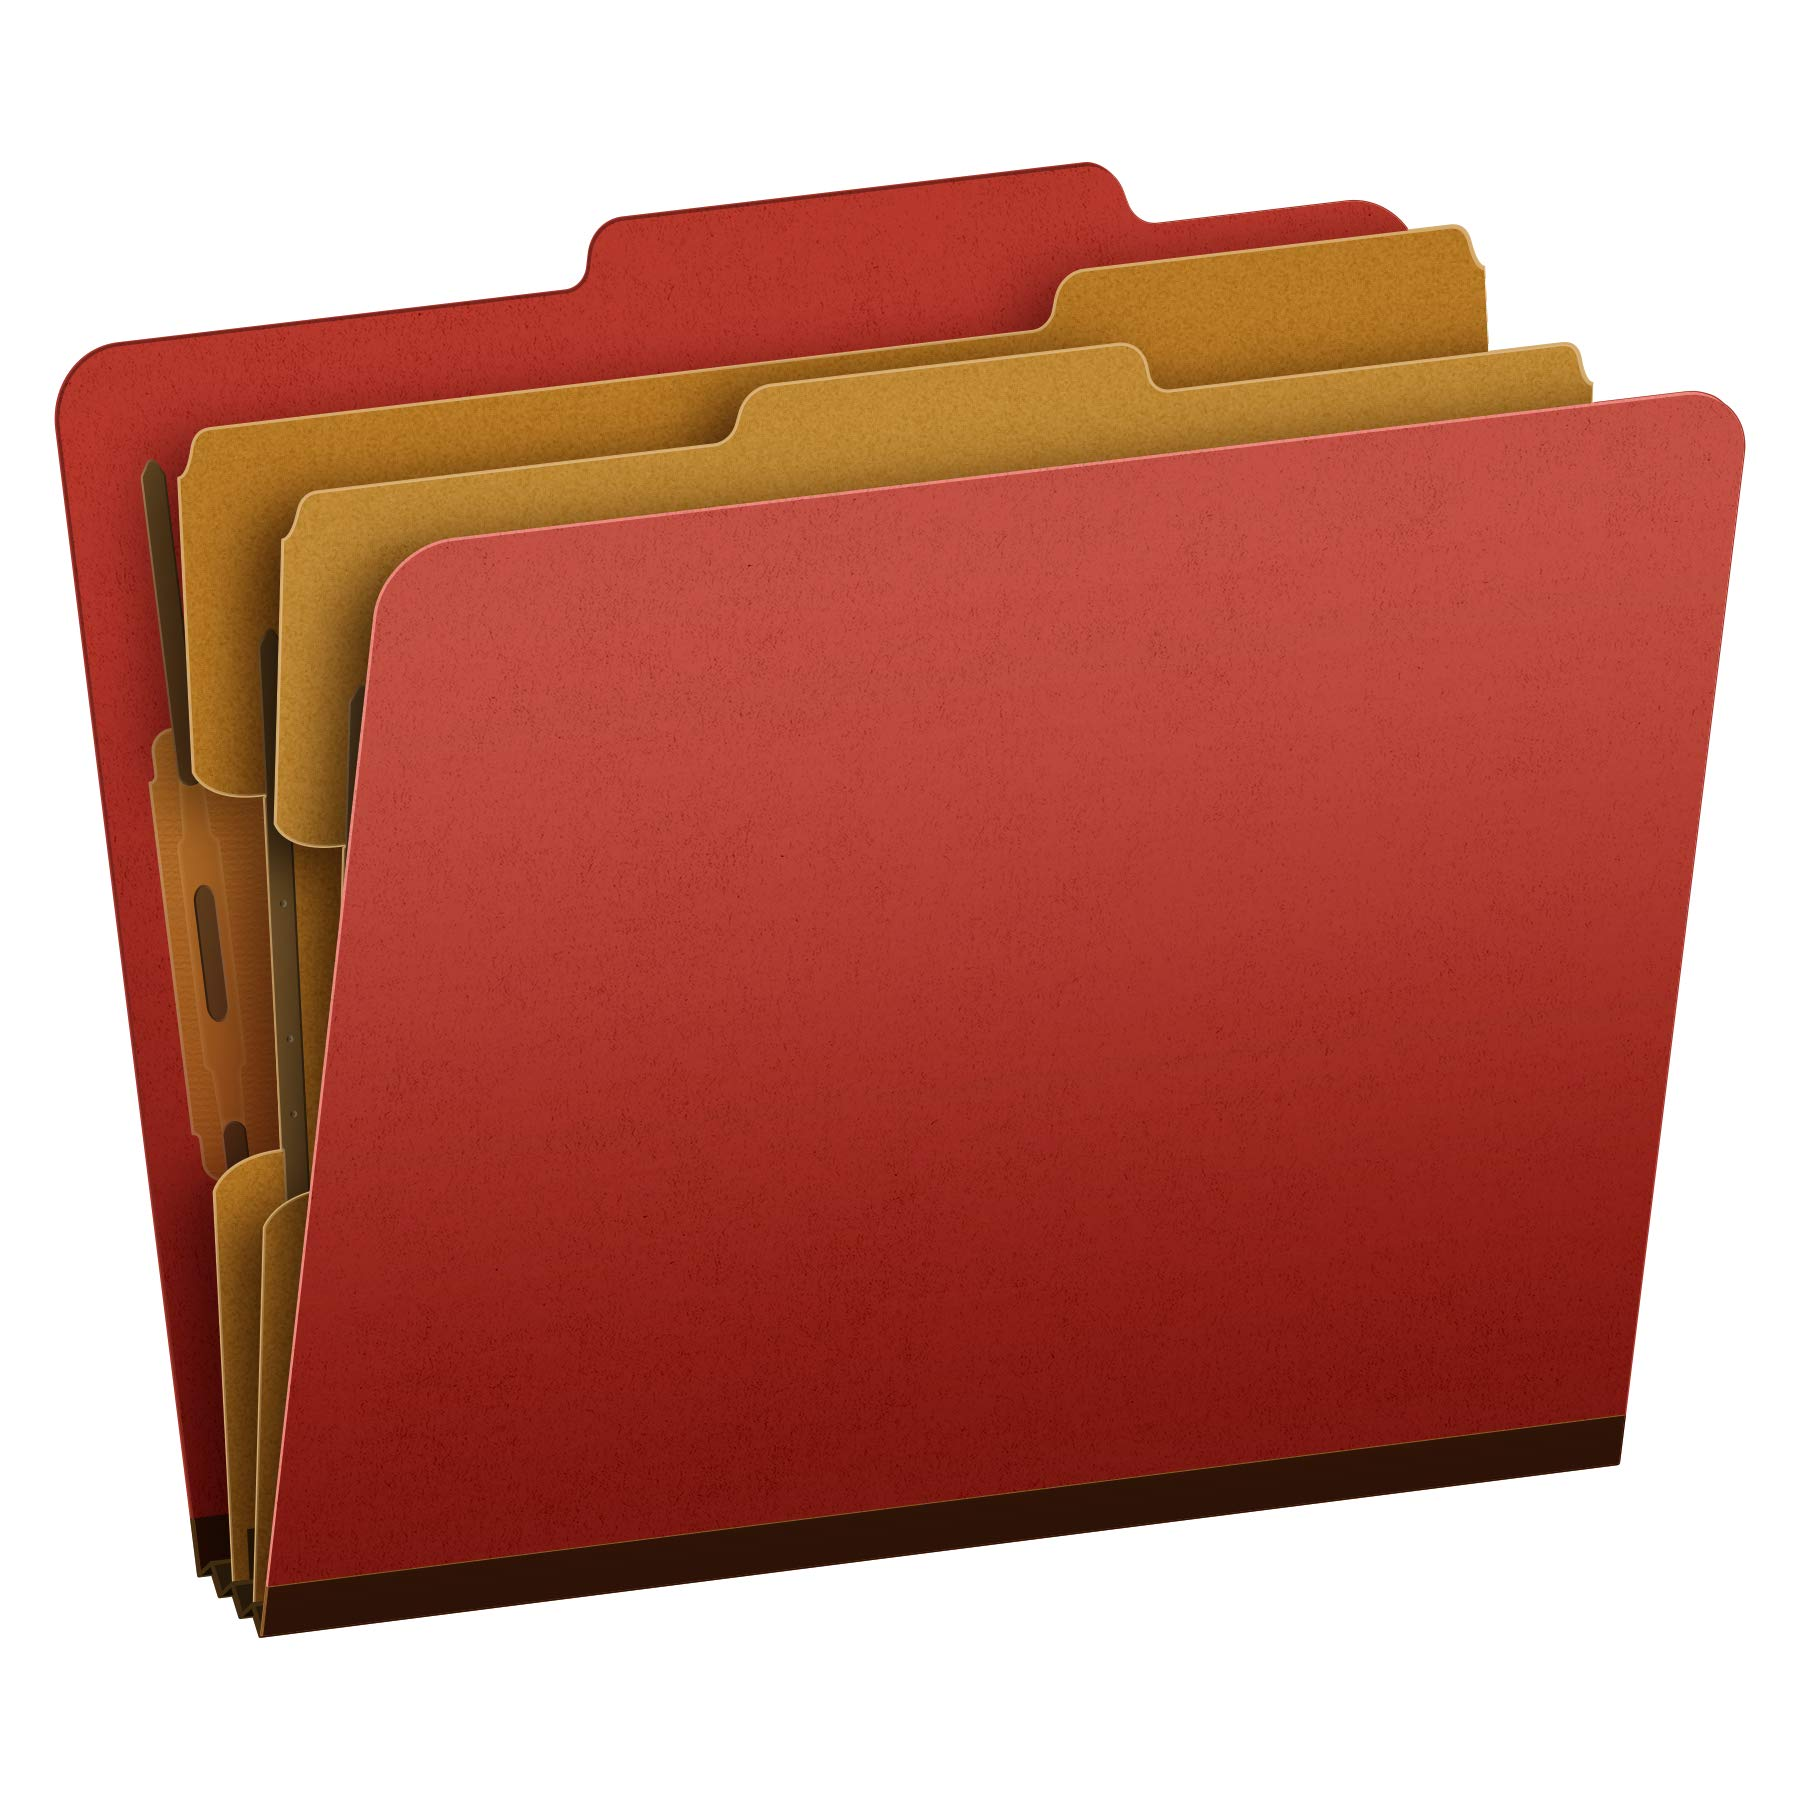 Pendaflex Pressboard Classification File Folder with Fasteners, 2 Dividers, 2-Inch Expansion, Letter Size, Brick Red, 10 per Box (1257R) by Pendaflex